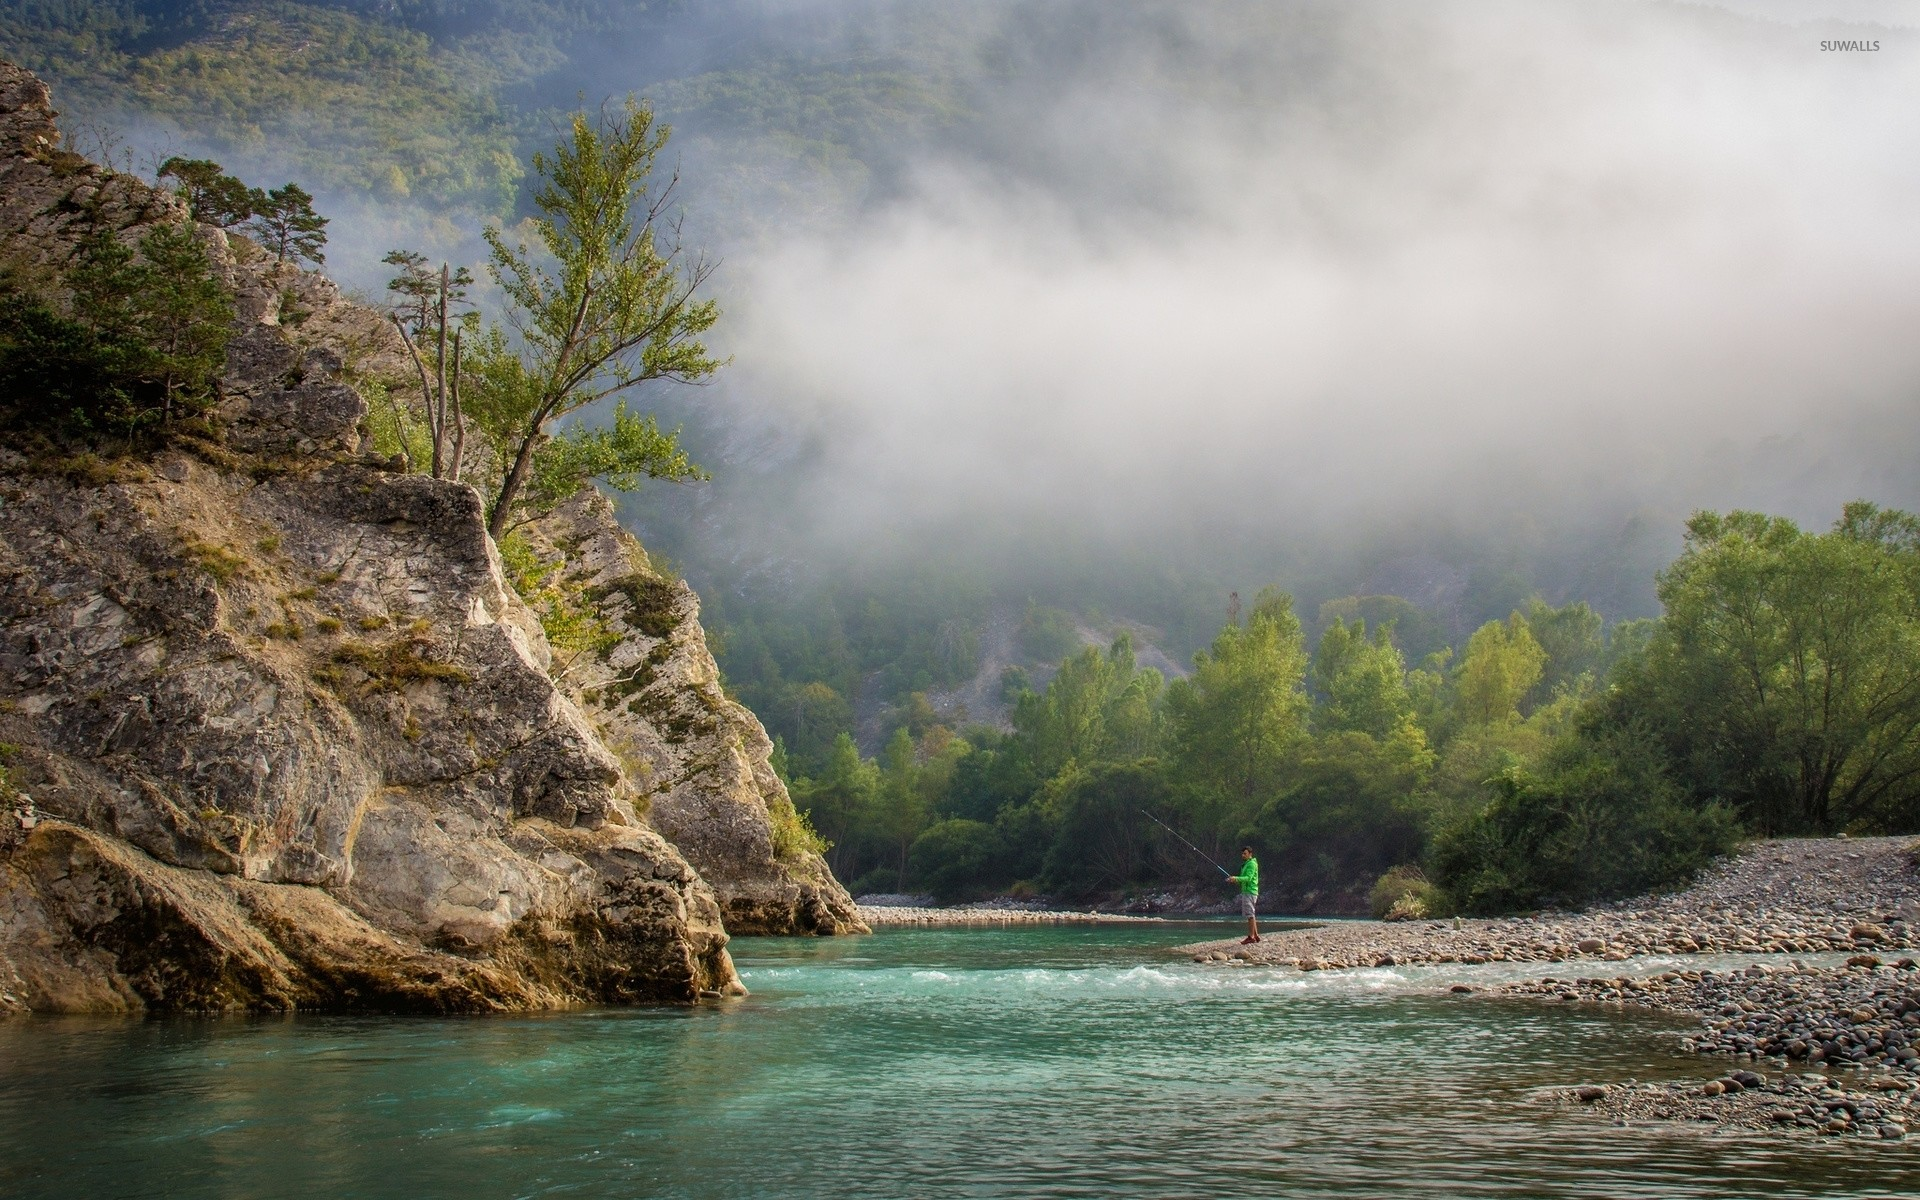 Fishing near the foggy forest mountain wallpaper